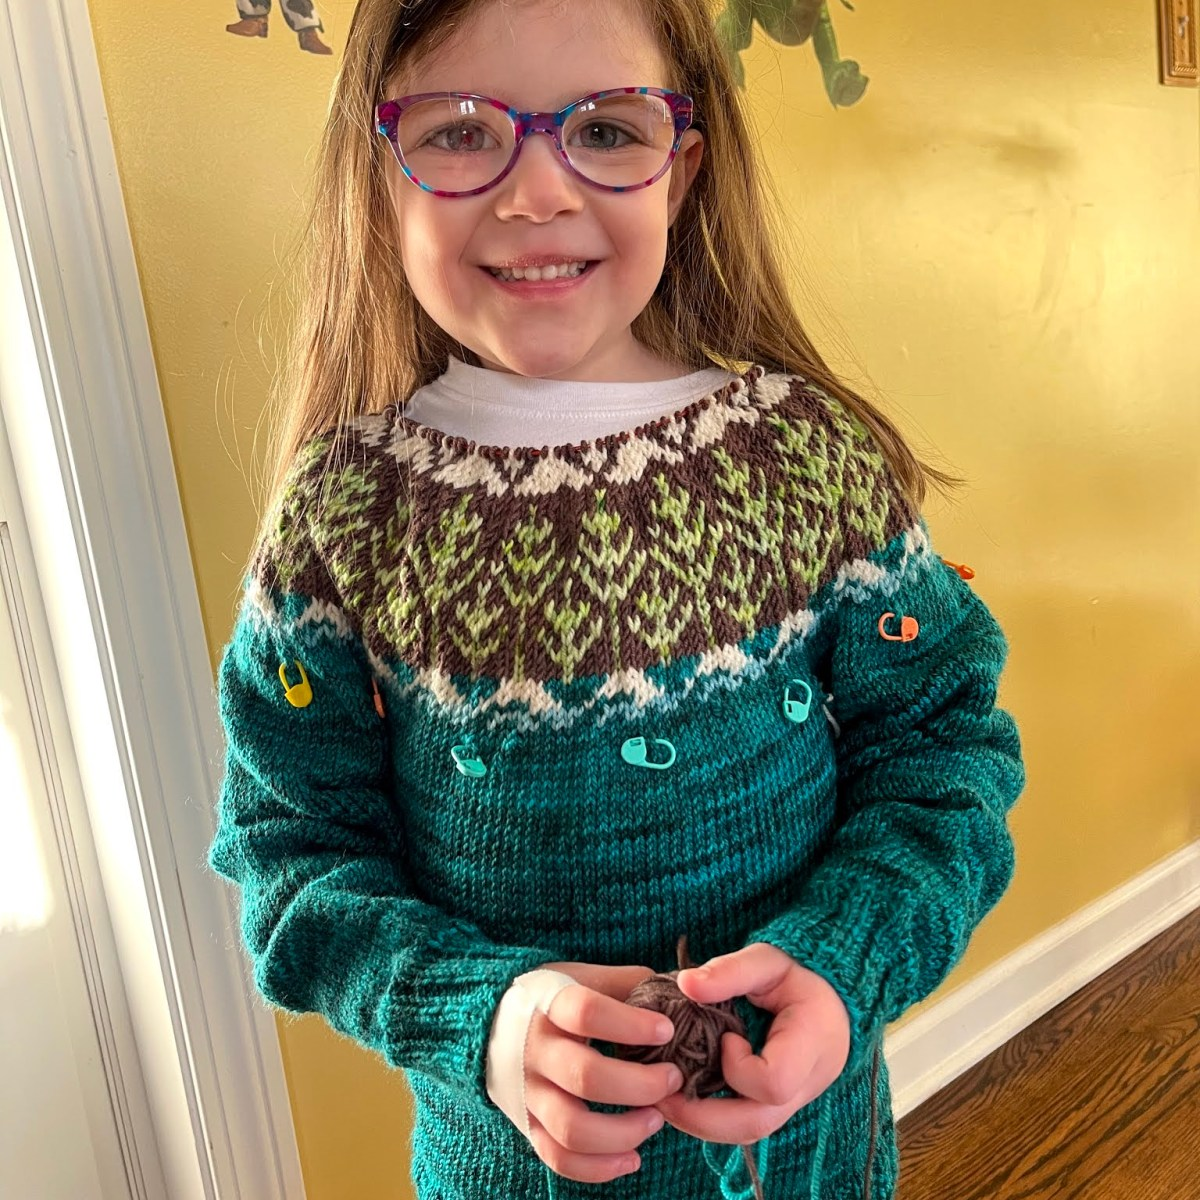 a little girl models a hand knitted sweater in progress